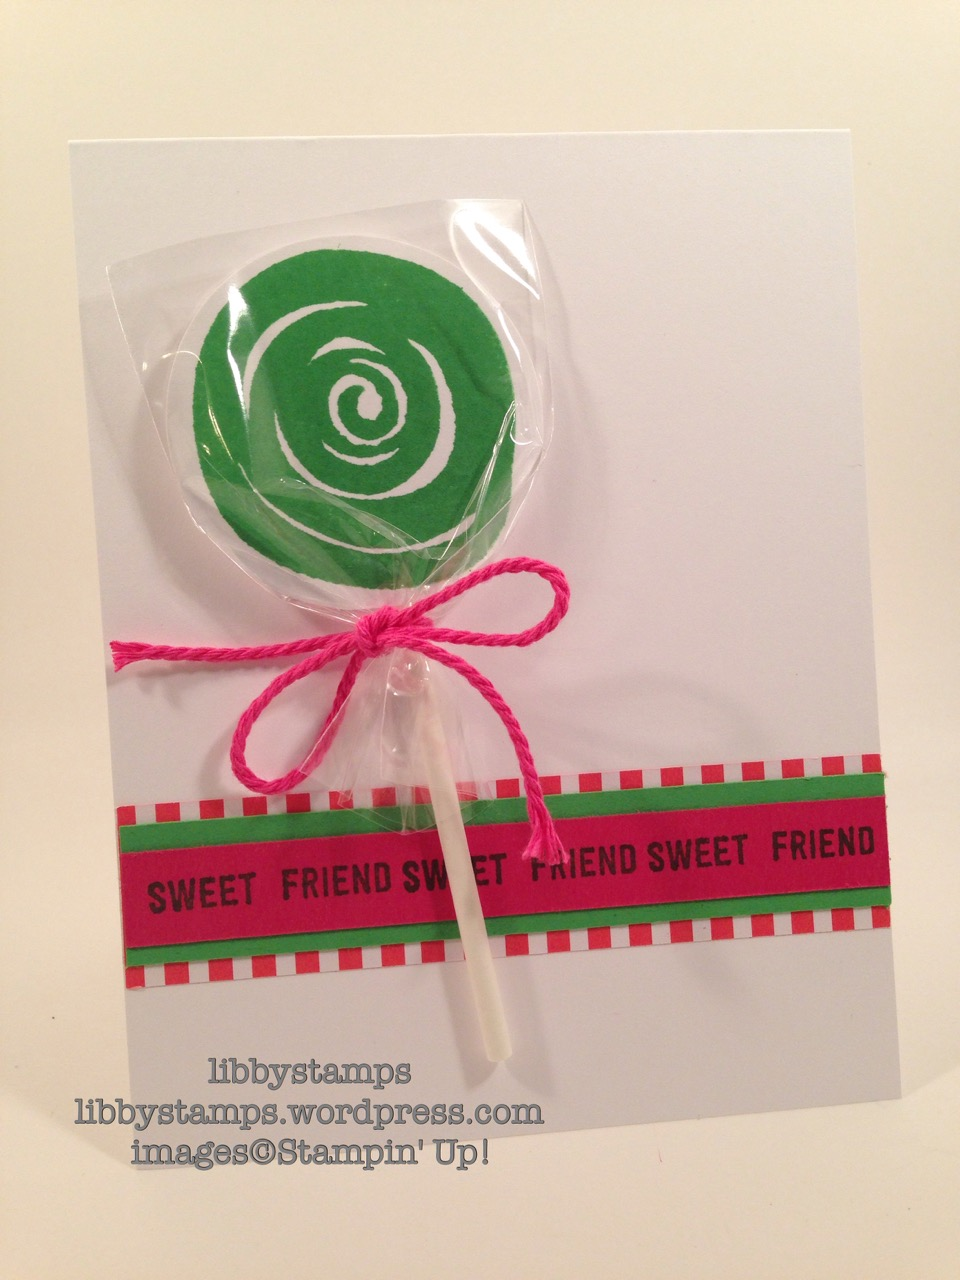 libbystamps, stampin up, Thoughtful Banners, Swirly Bird, We Create, lollipop card, summer